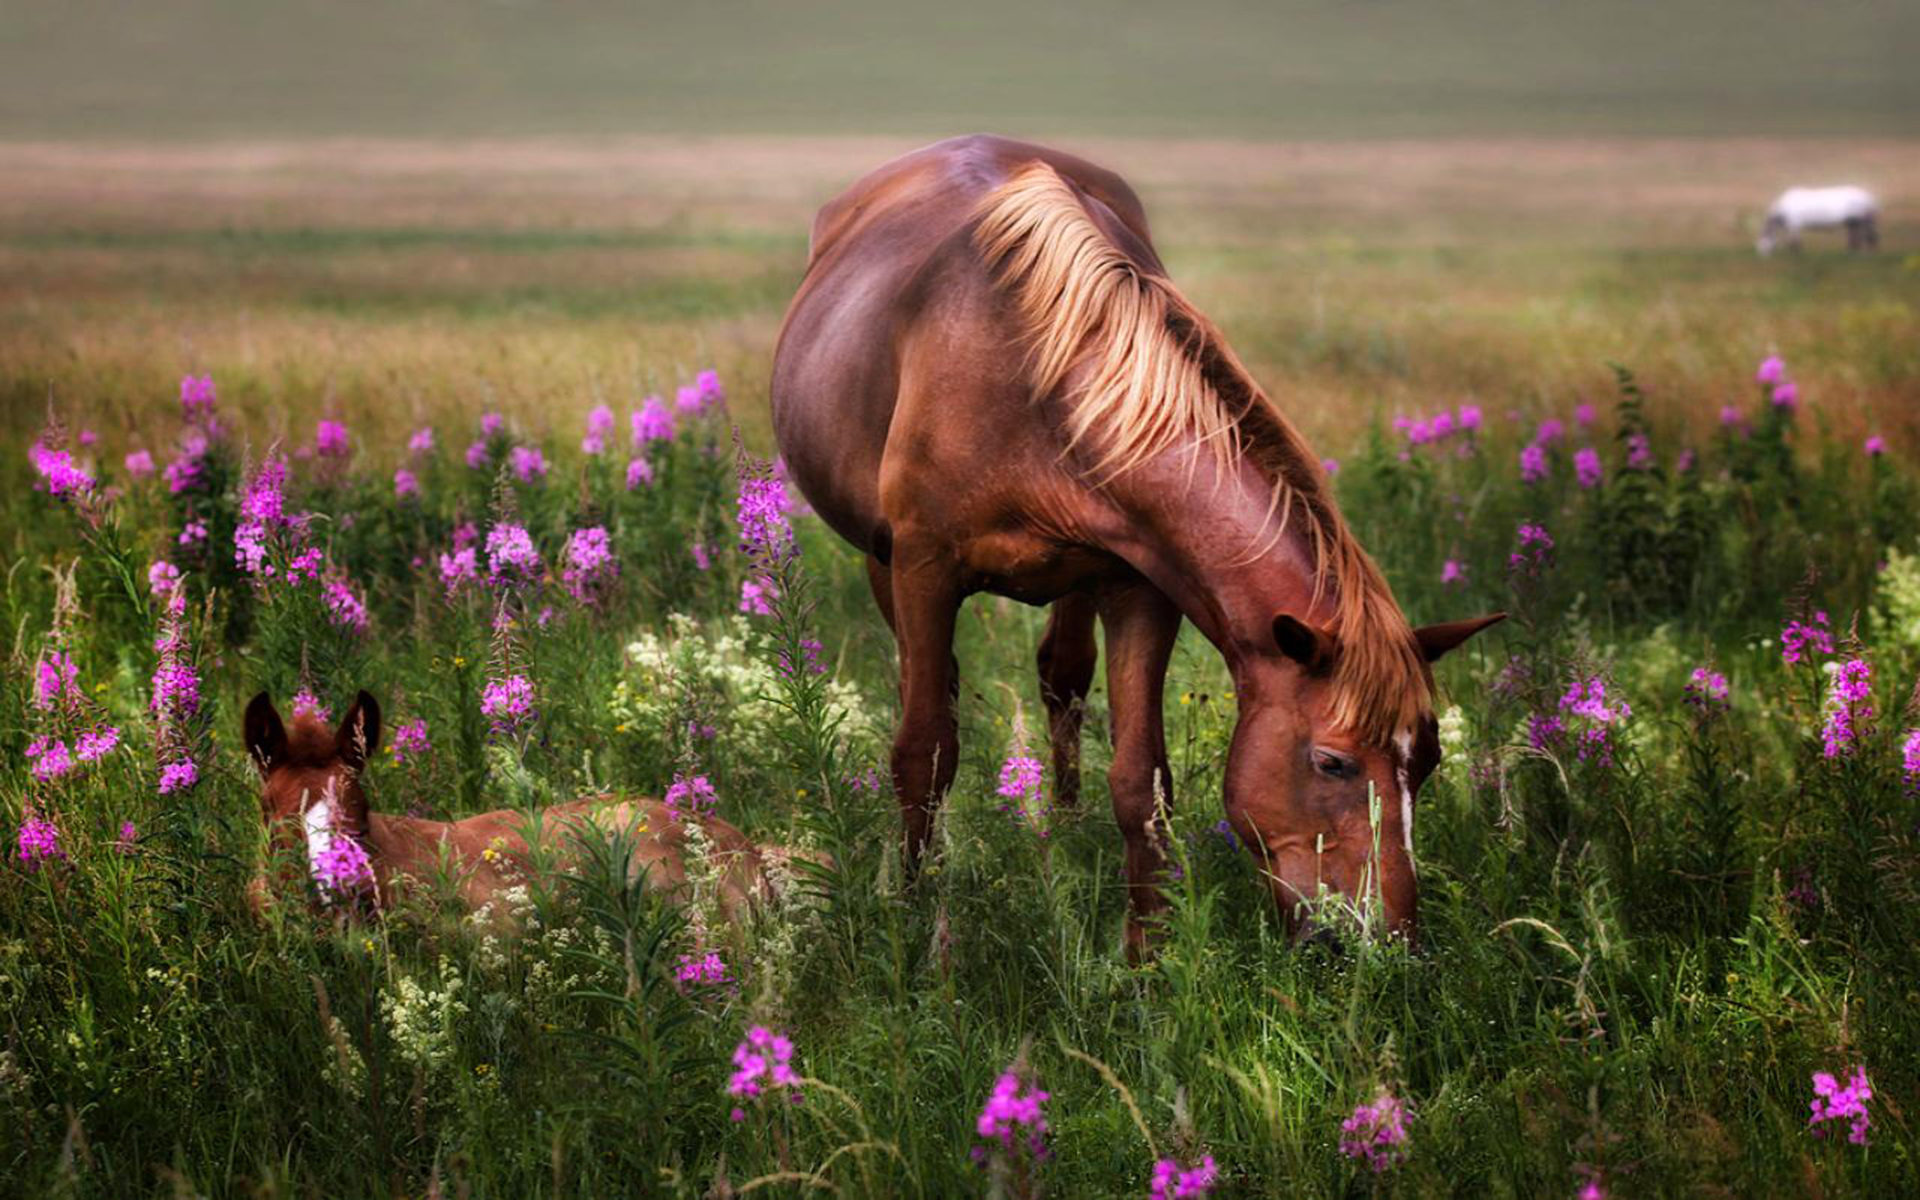 Cute Baby Monkey Wallpapers Horses Red Mare And Foal Meadow Flowers Hd Wallpaper4829